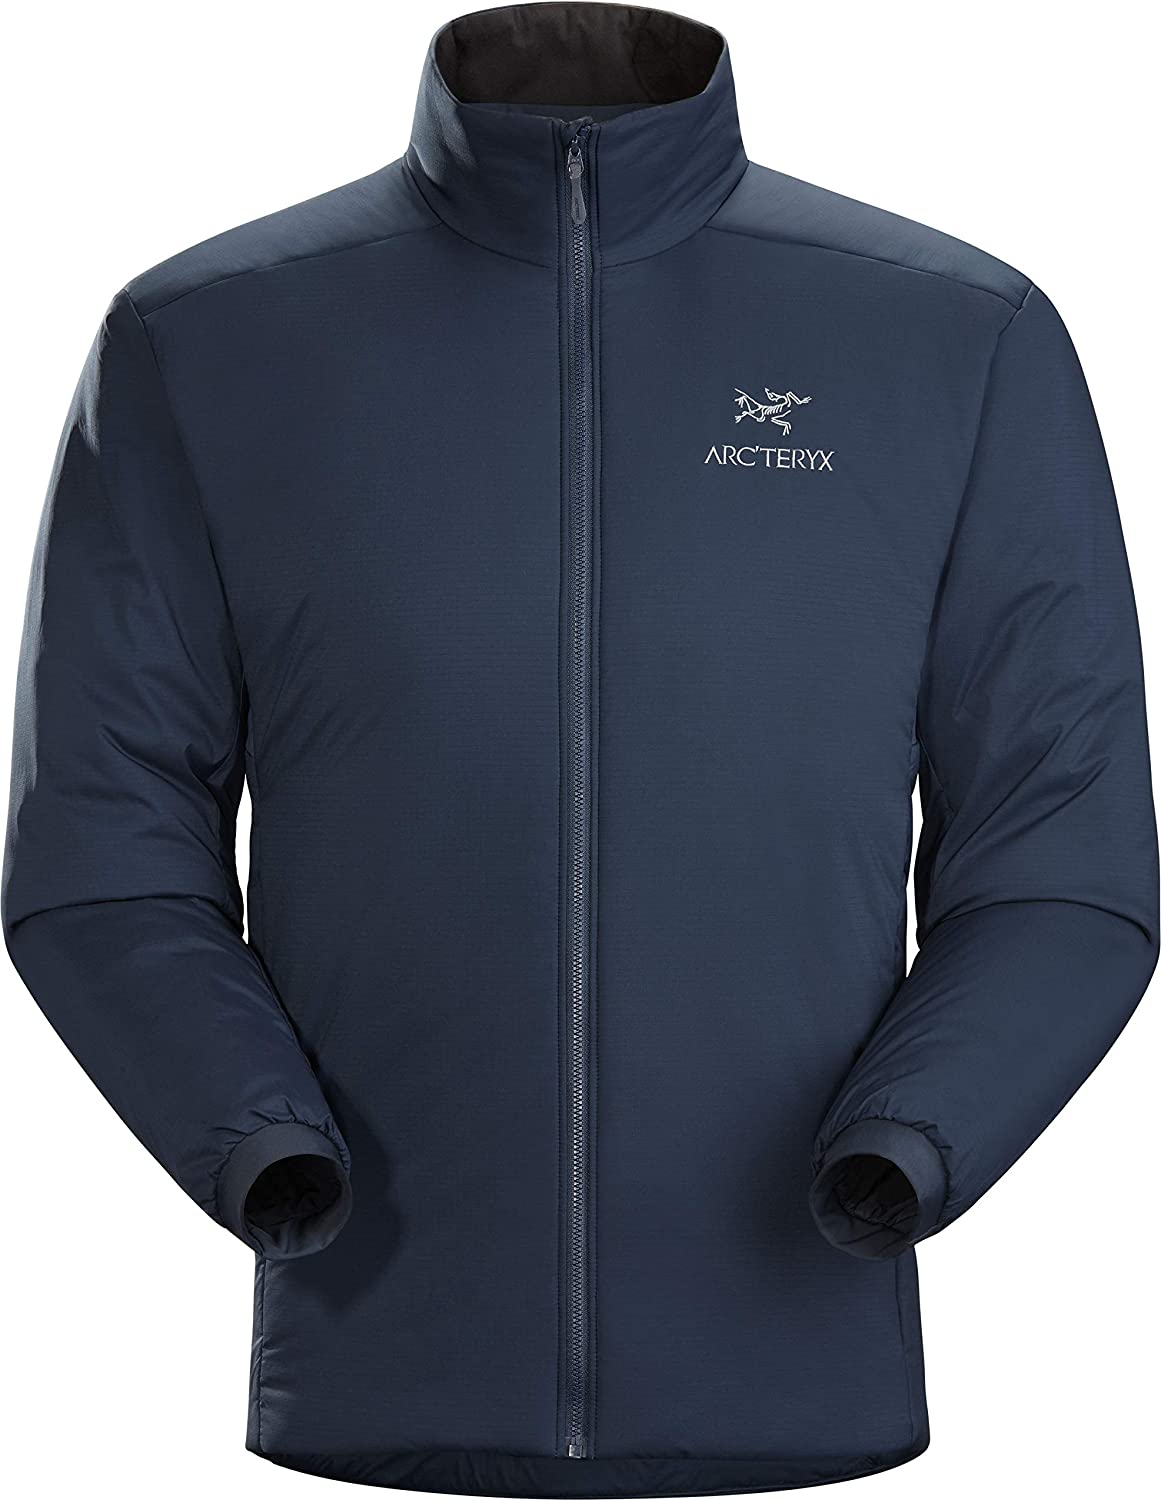 Redesign Arcteryx Atom AR Jacket Mens